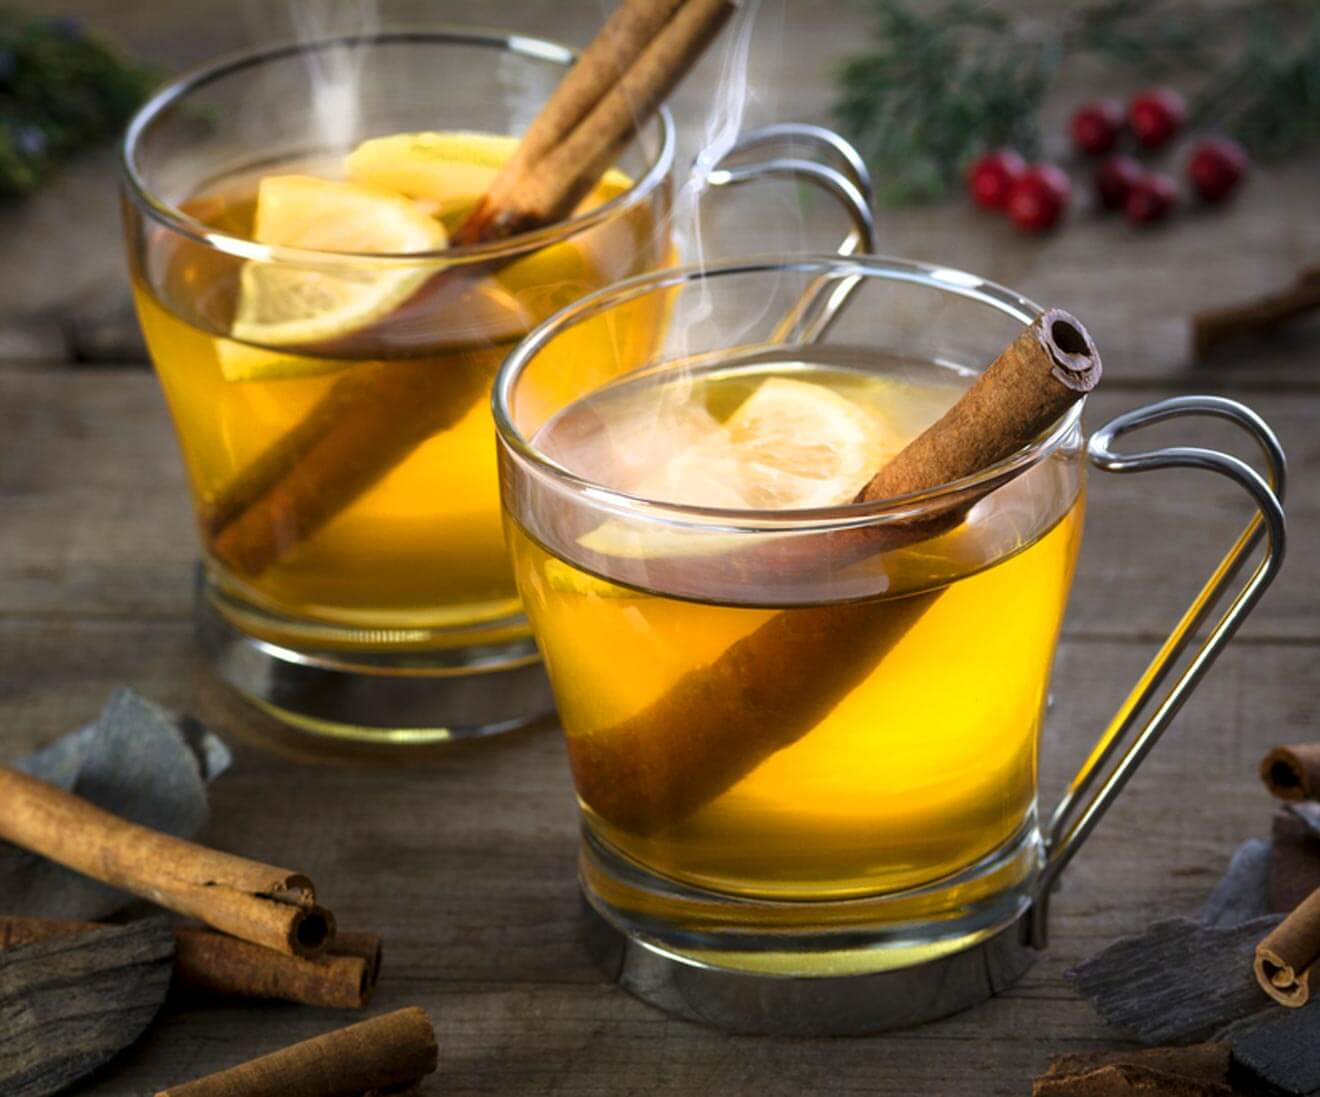 Classic Hot Toddy cocktail, what's chilling right now